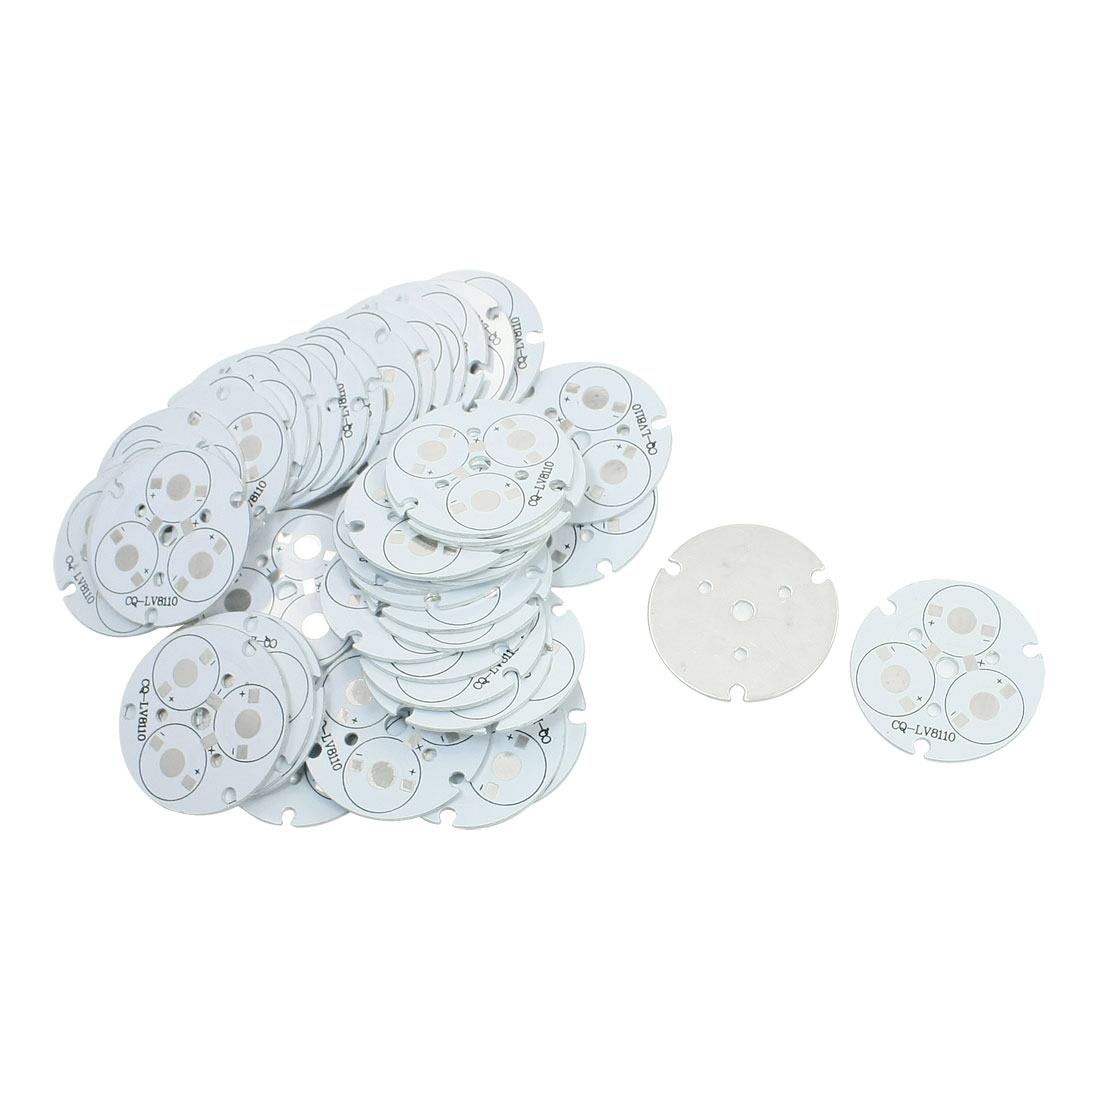 50pcs 4.5cm Circle Aluminum Base Plate PCB Circuit Board for 3 x 1W/3W High Power LEDs Bulb Light in Series